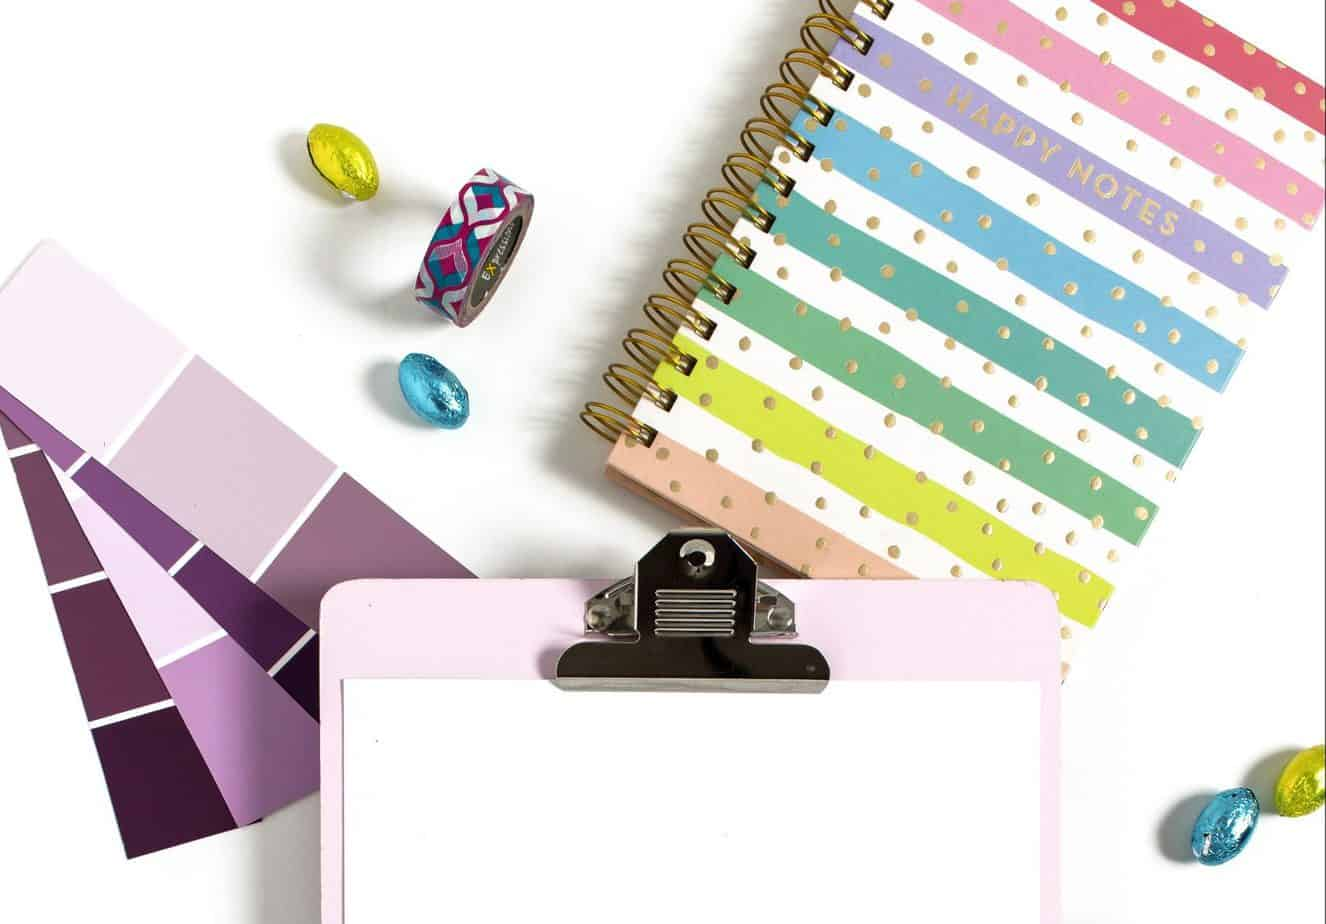 Clip board with colorful objects around it